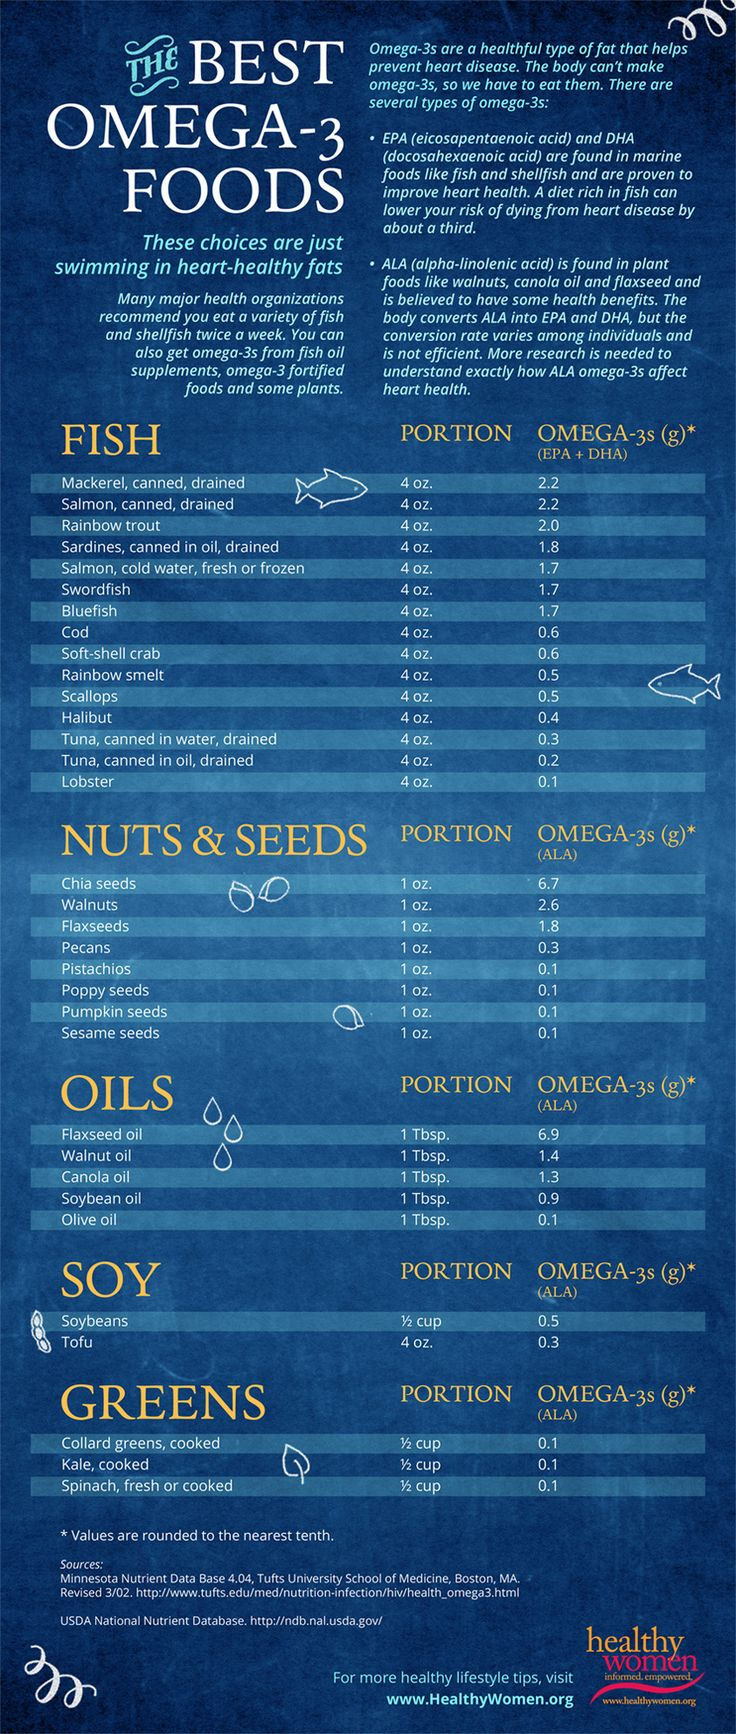 The Best Omega-3 Food Sources #omega3s #health #hearthealth